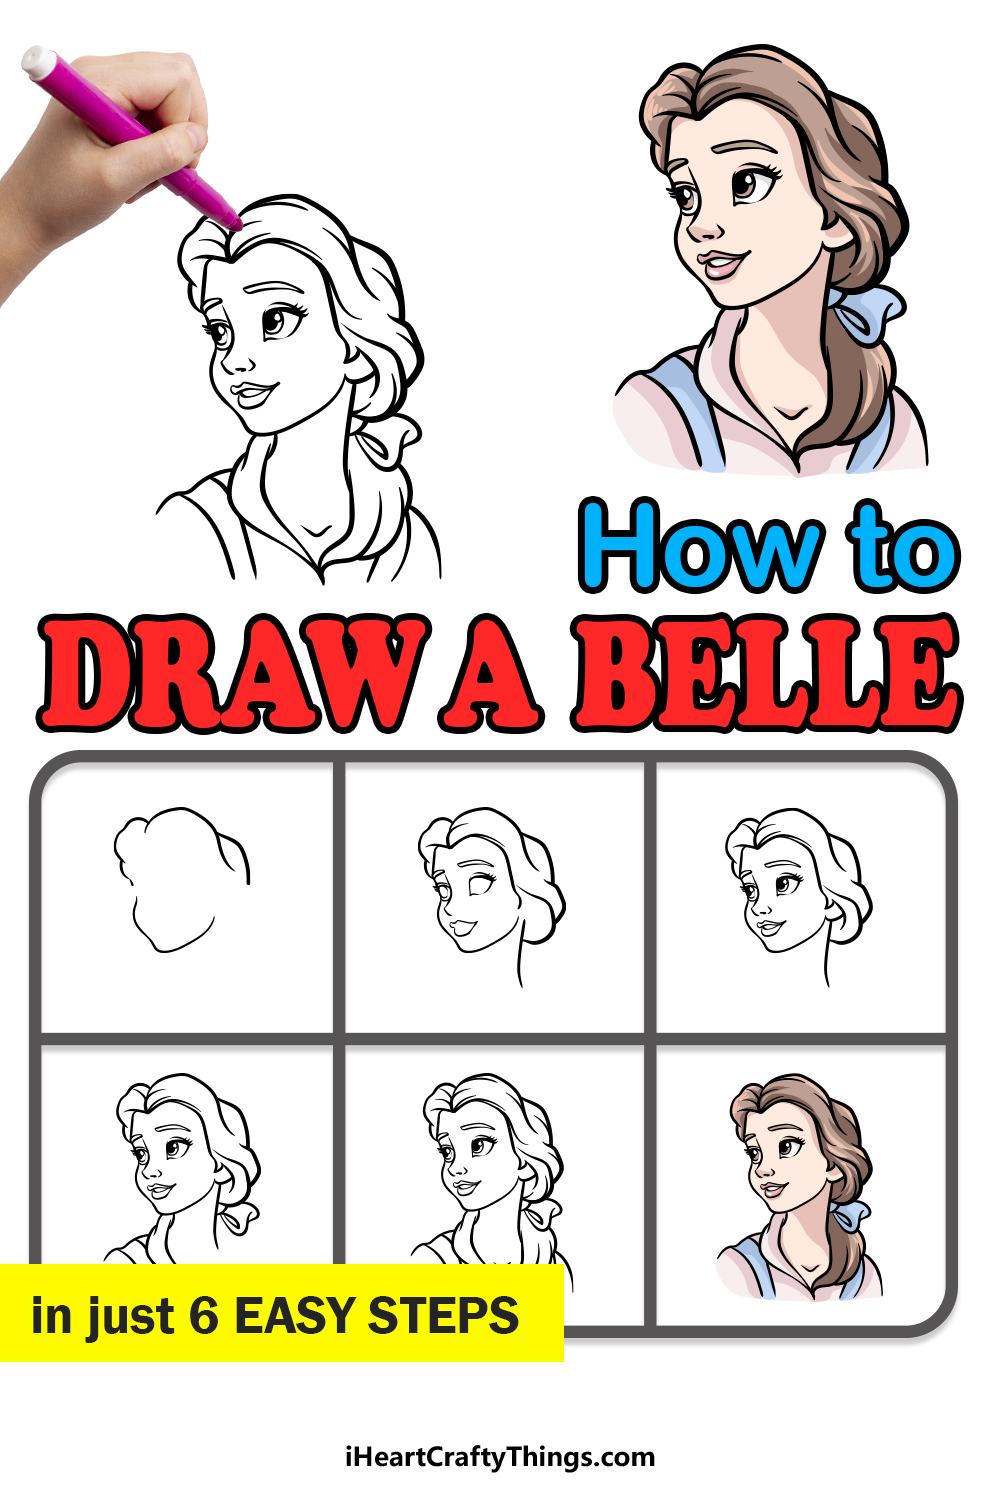 how to draw Belle in 6 easy steps